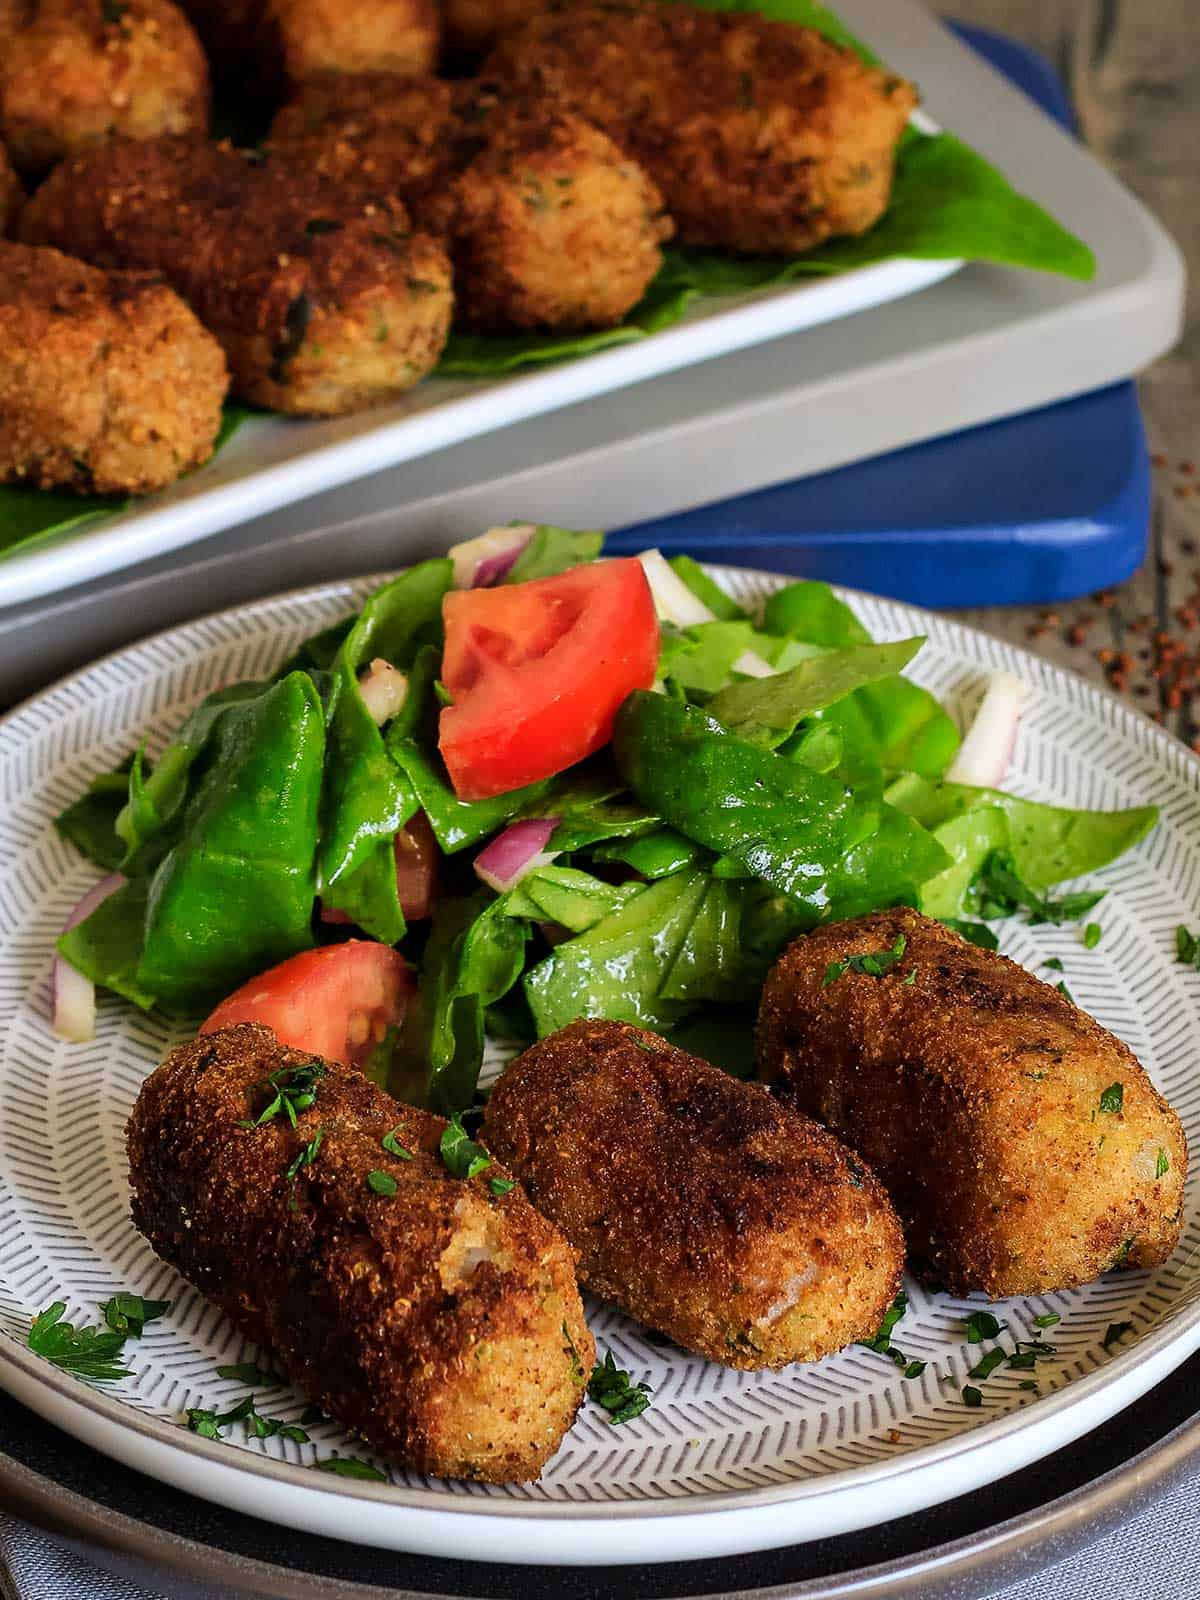 Front view of cooked potato quinoa croquettes on plate with small salad.